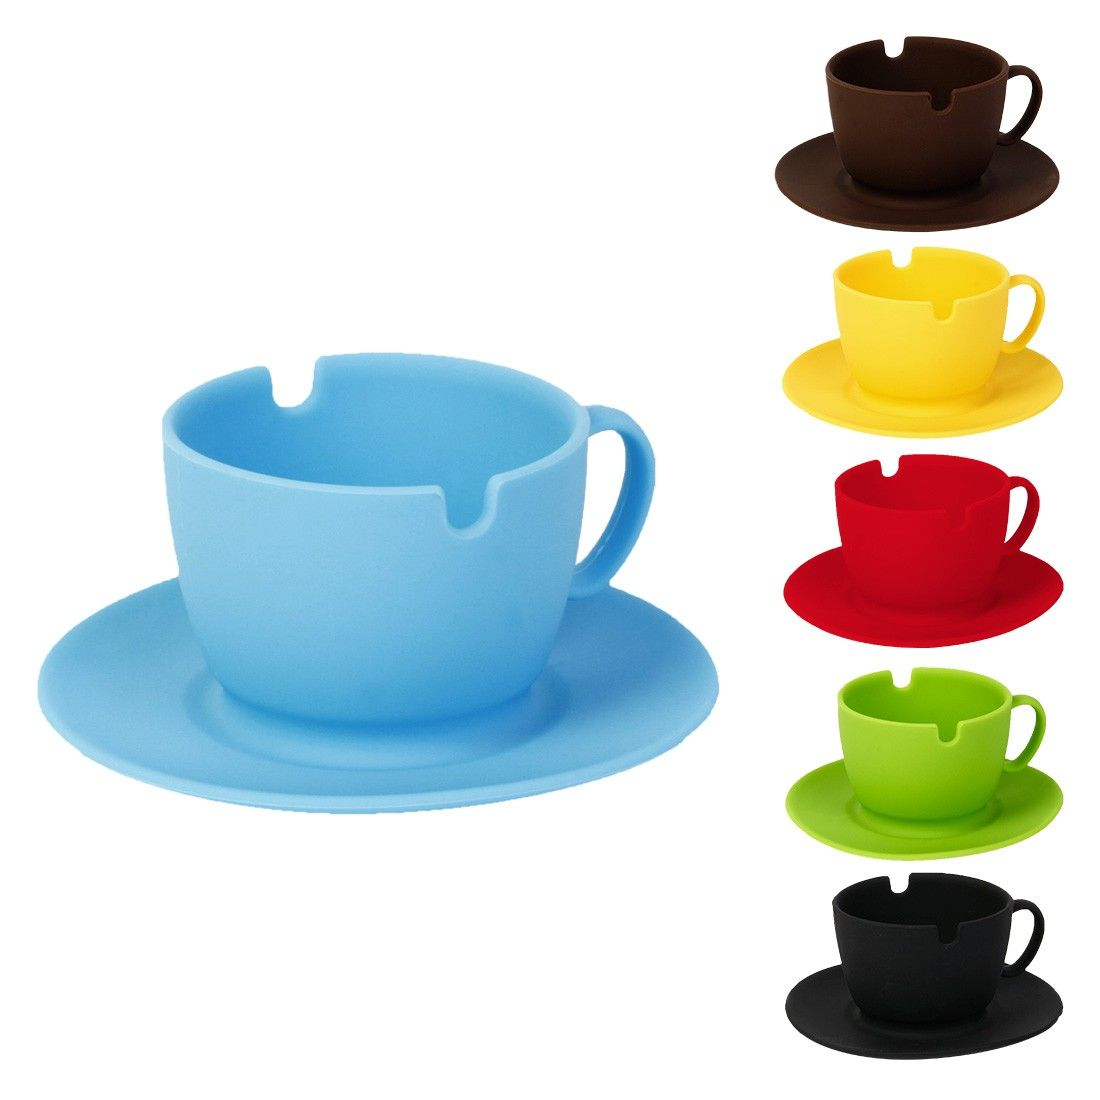 cendrier silicone tasse a caf cendrier original pas cher planete. Black Bedroom Furniture Sets. Home Design Ideas